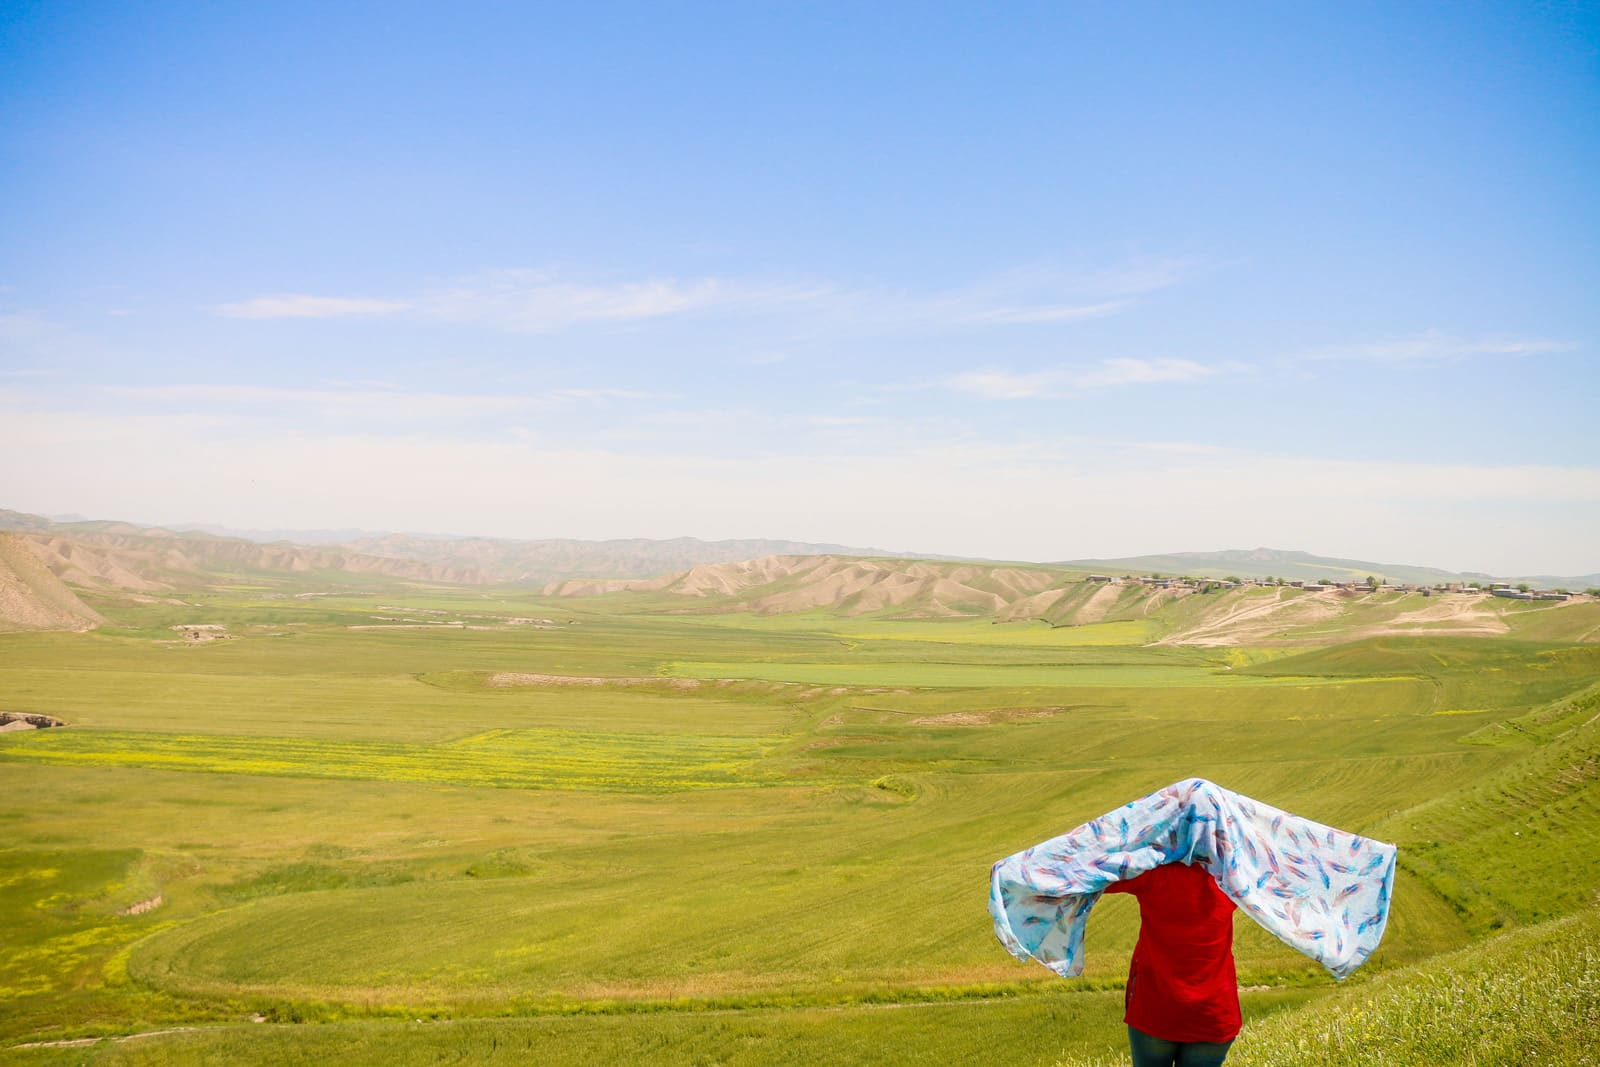 Interview with a tour leader and female travel blogger from Iran - Matin in Golestan, Iran